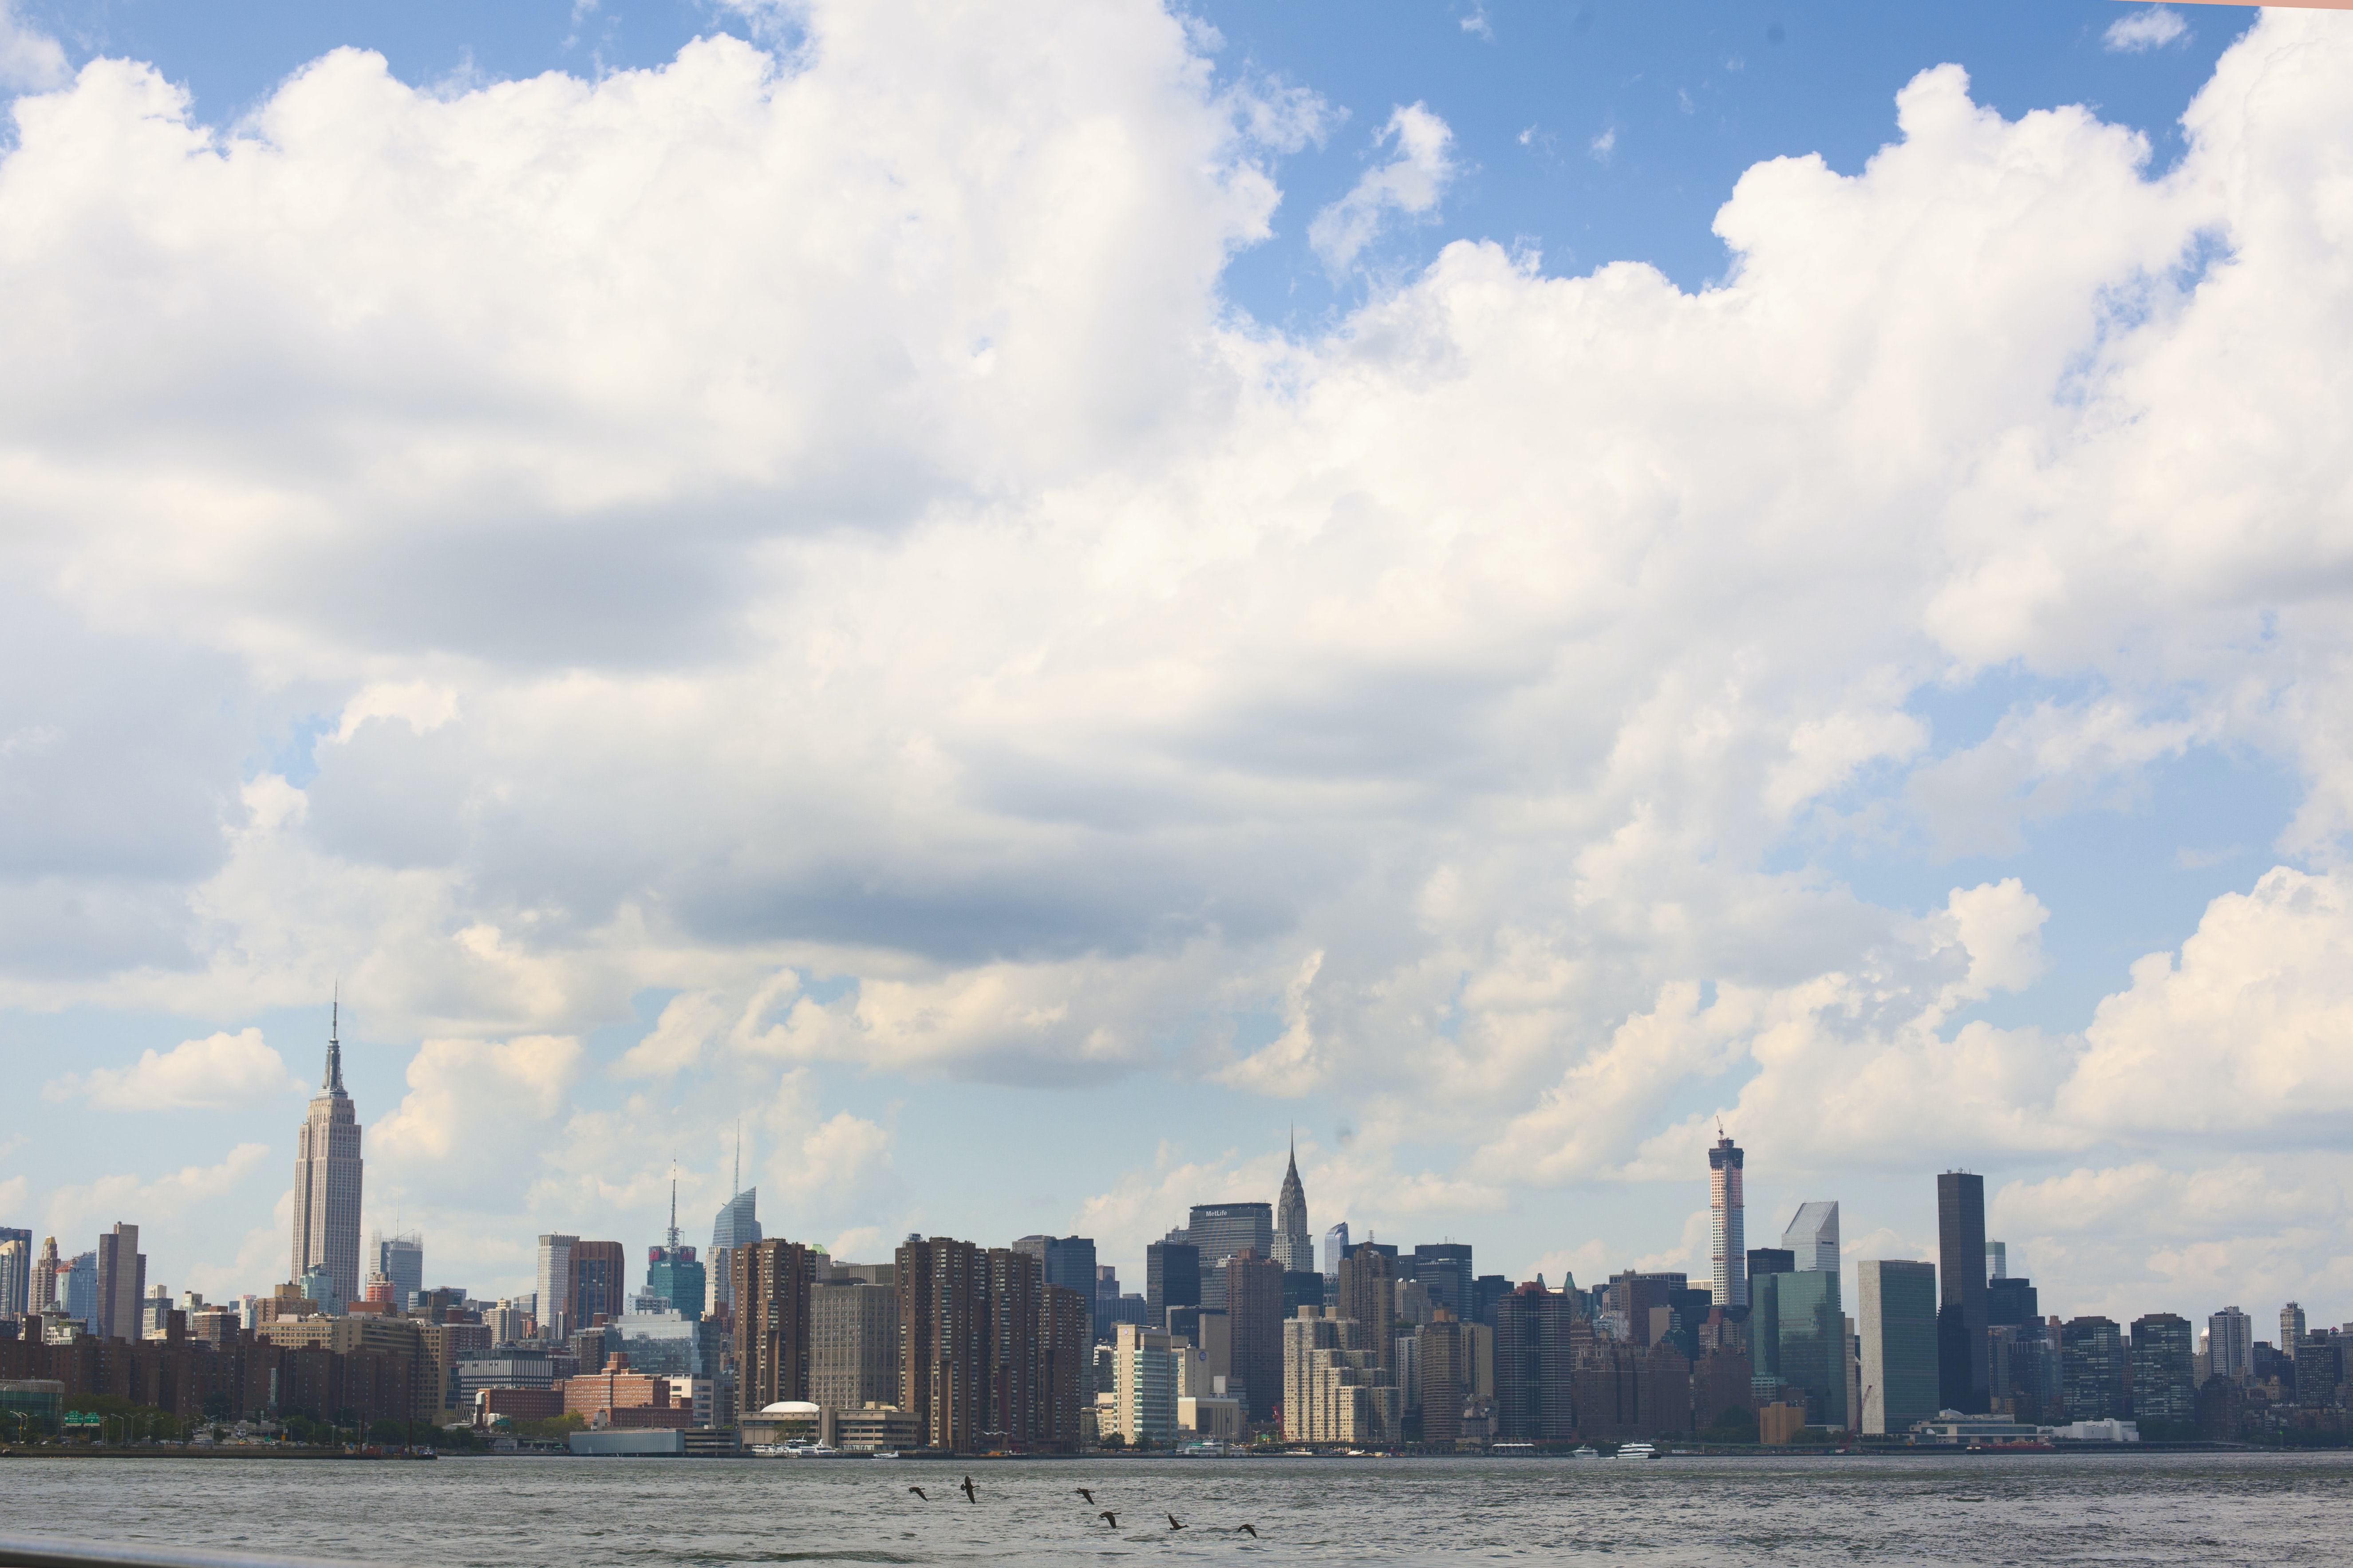 Fluffy, white clouds cover the New York City skyline and the river